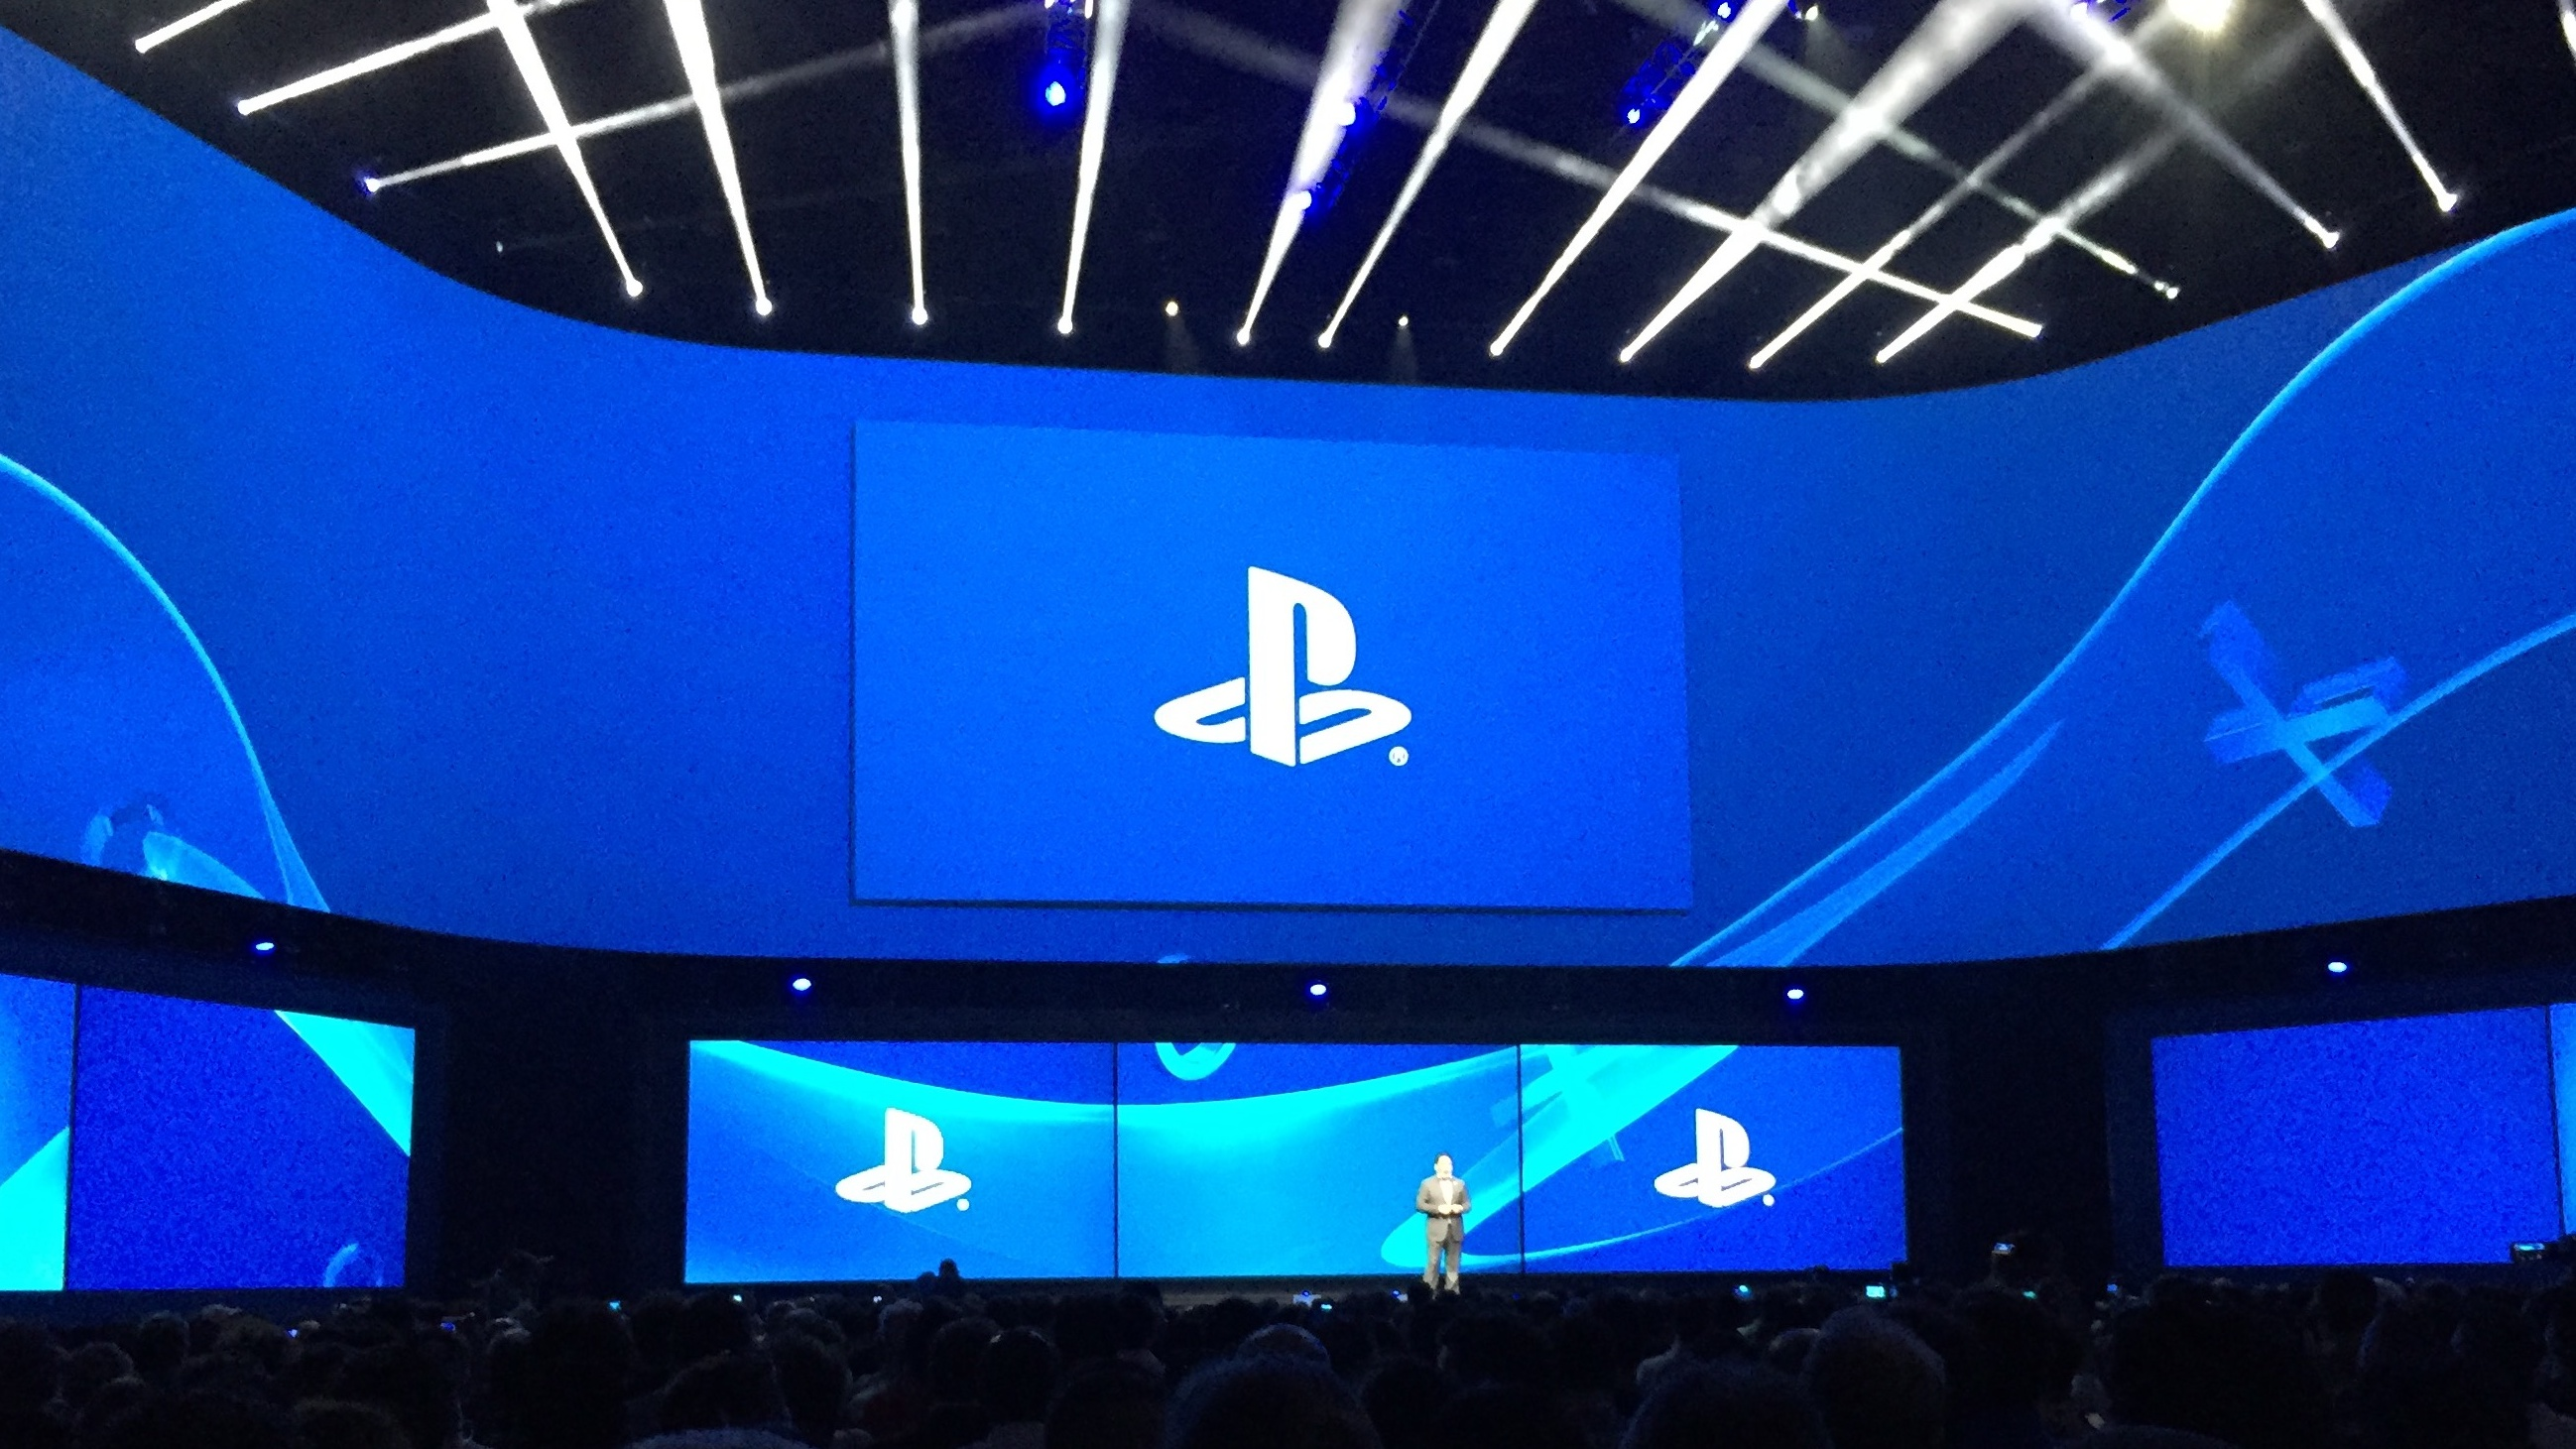 Sony Playstation 5 (MOBHouse Productions)